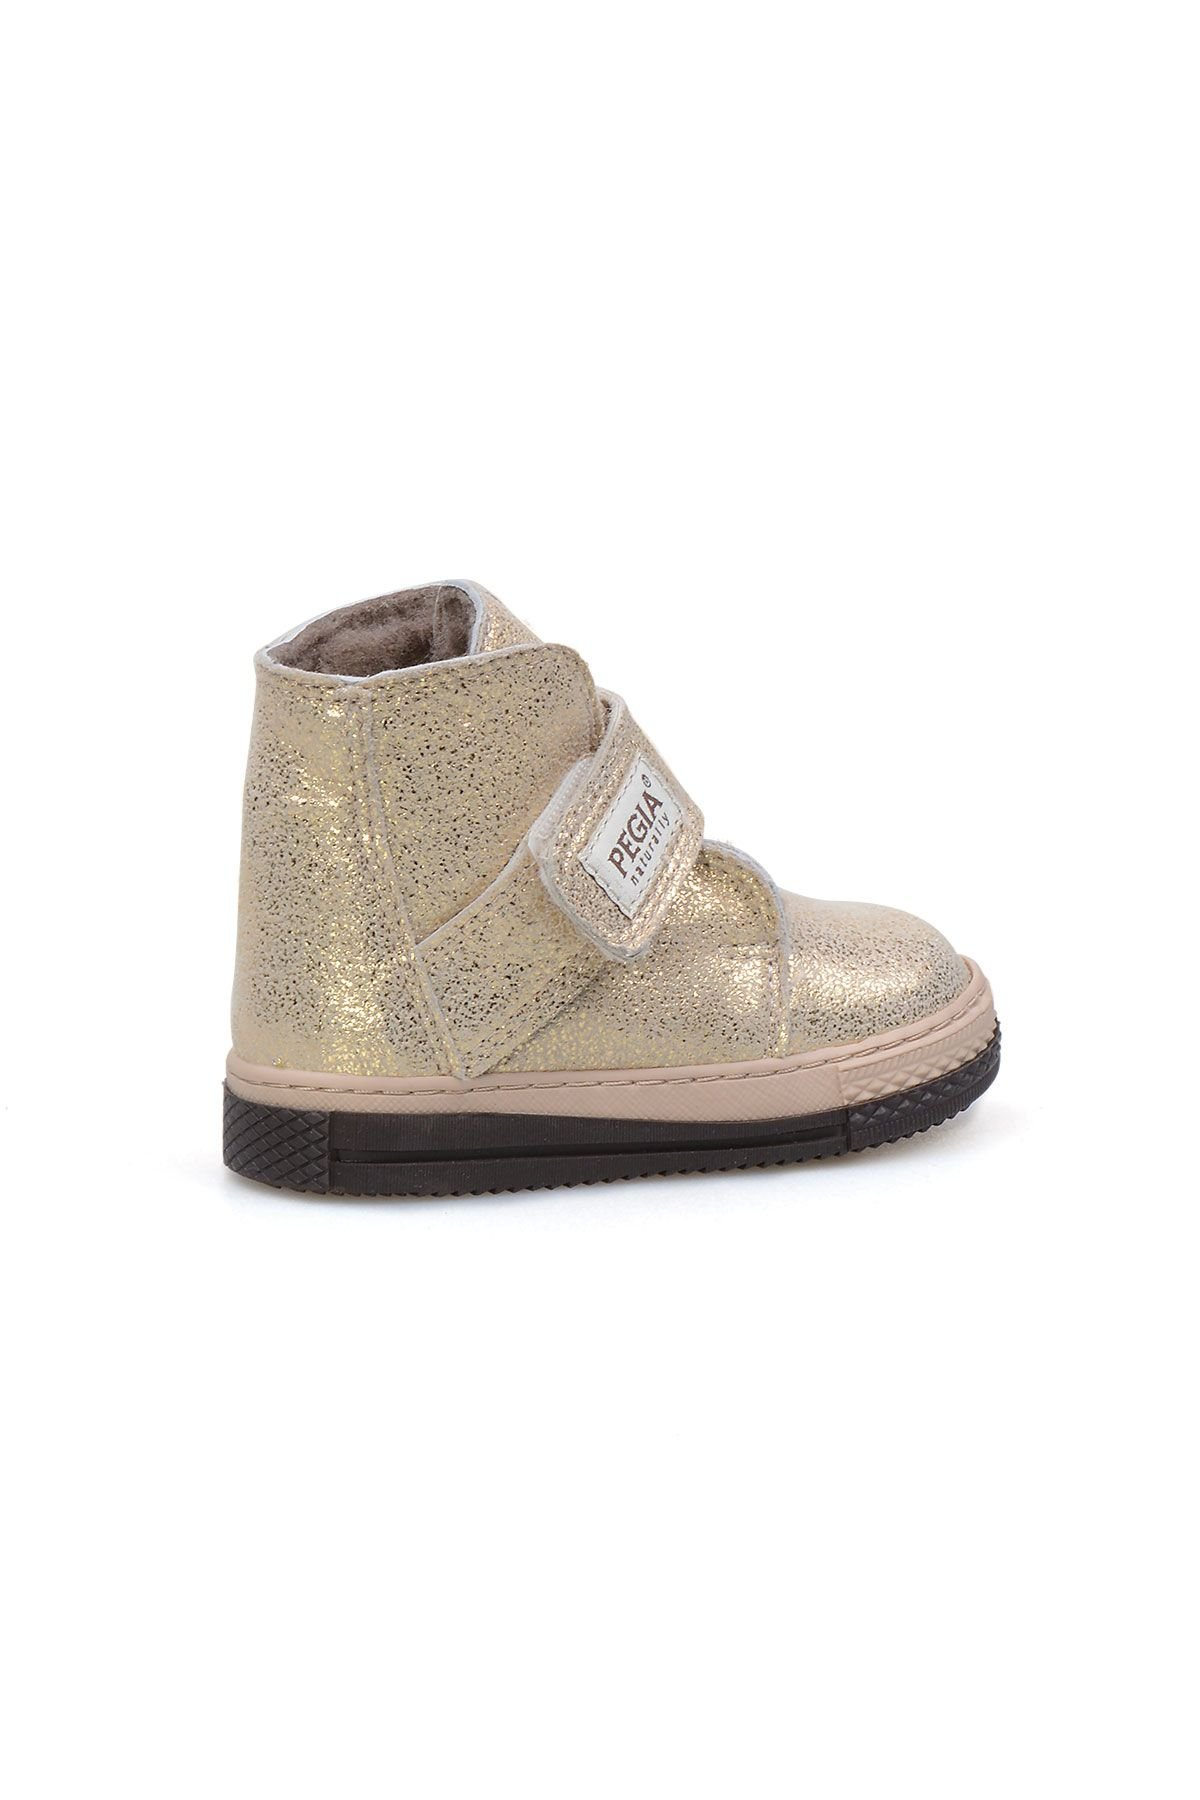 Pegia Genuine Printed Leather Sheepskin Lined Kid's Boots 186018 Golden